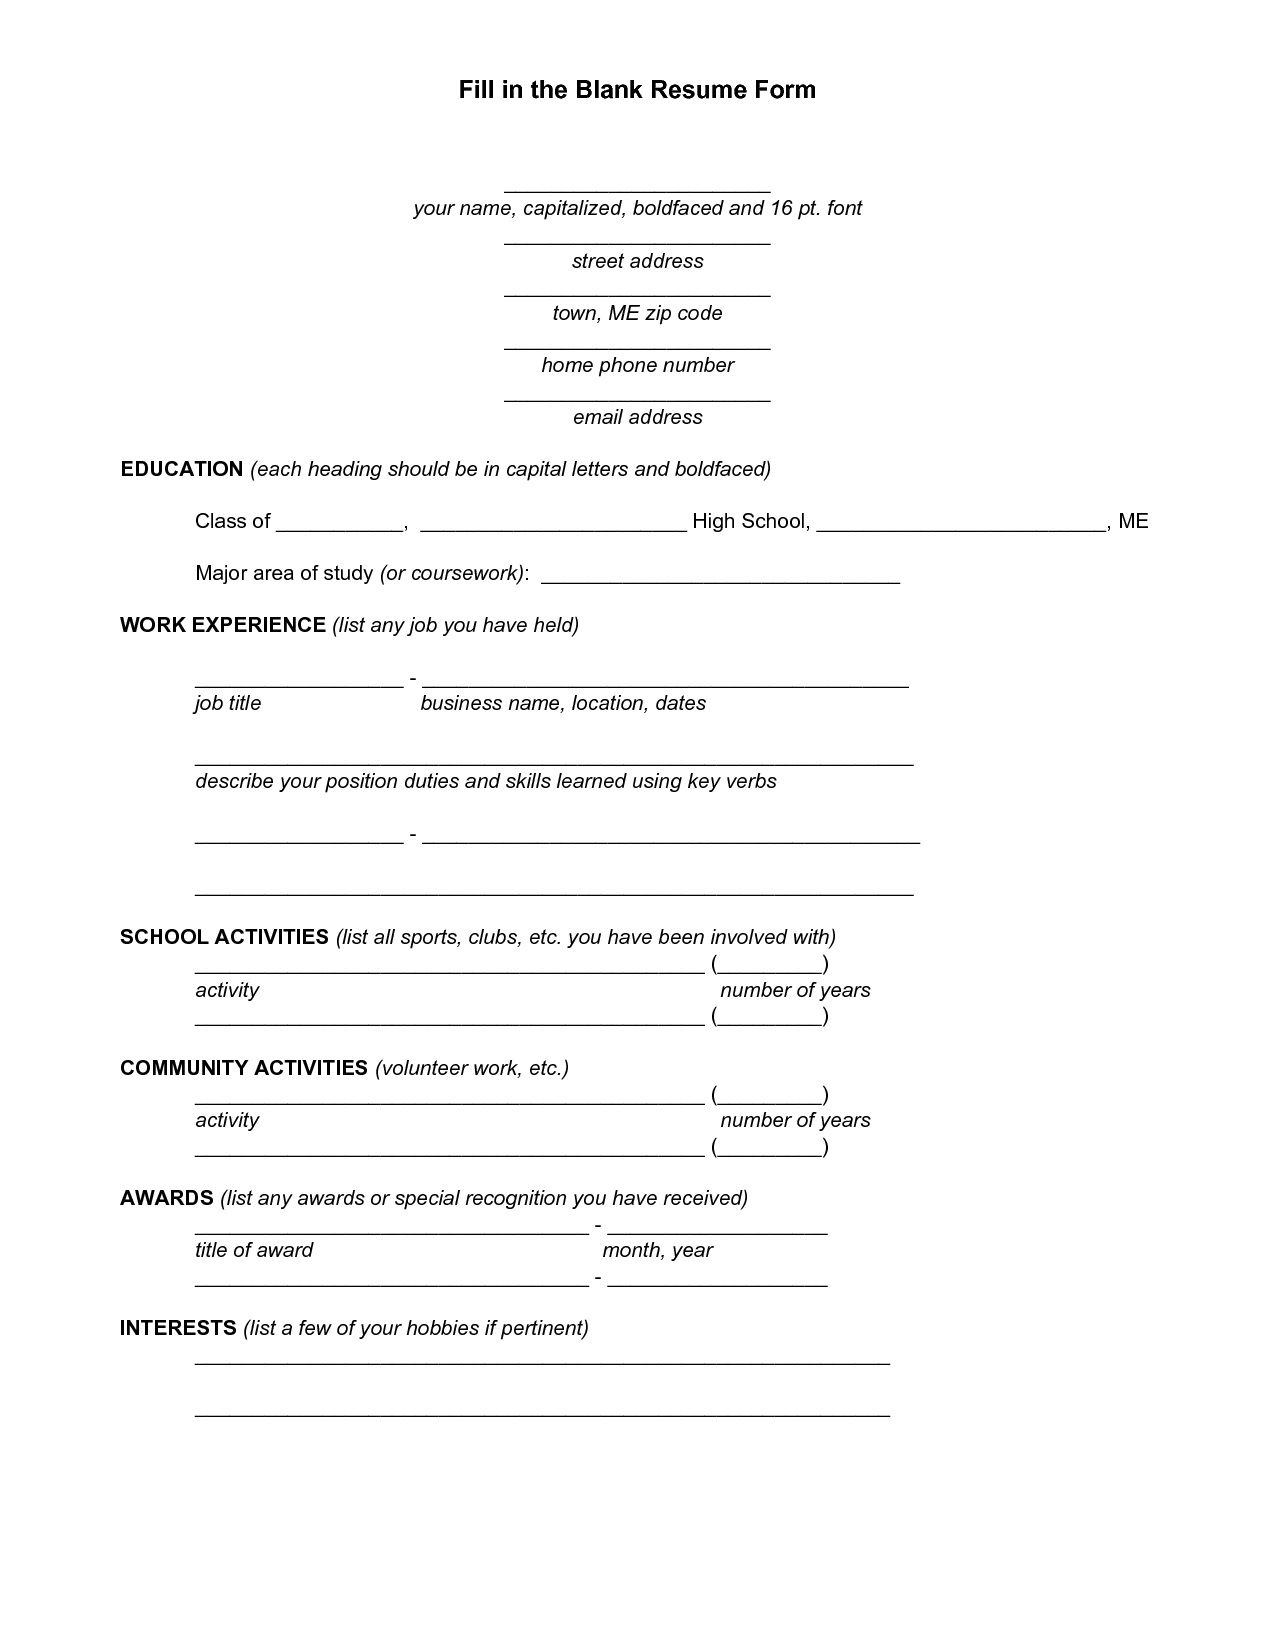 blank job resume form